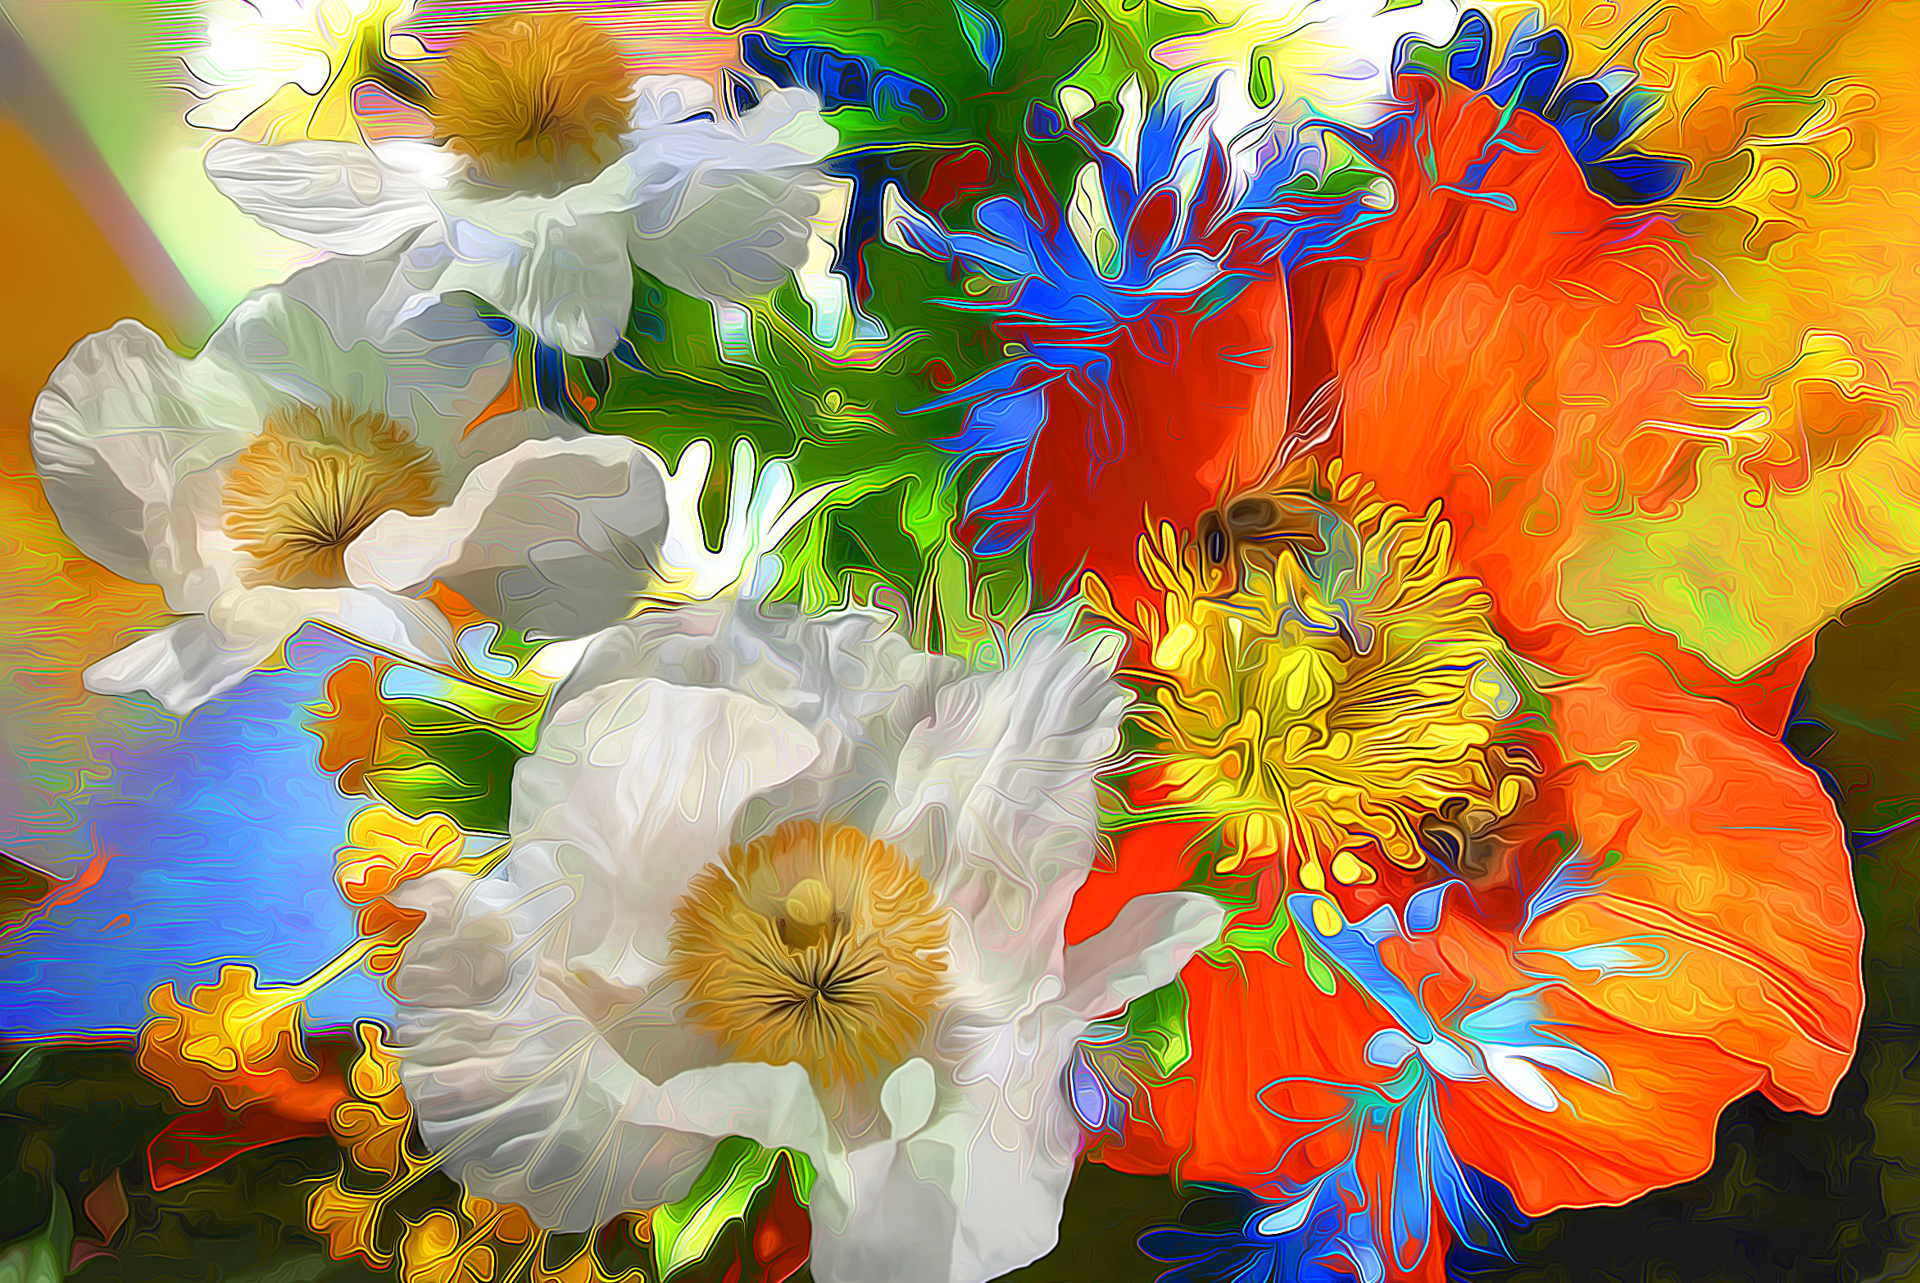 96139 download wallpaper Abstract, Rendering, Bright, Lines, Flowers screensavers and pictures for free